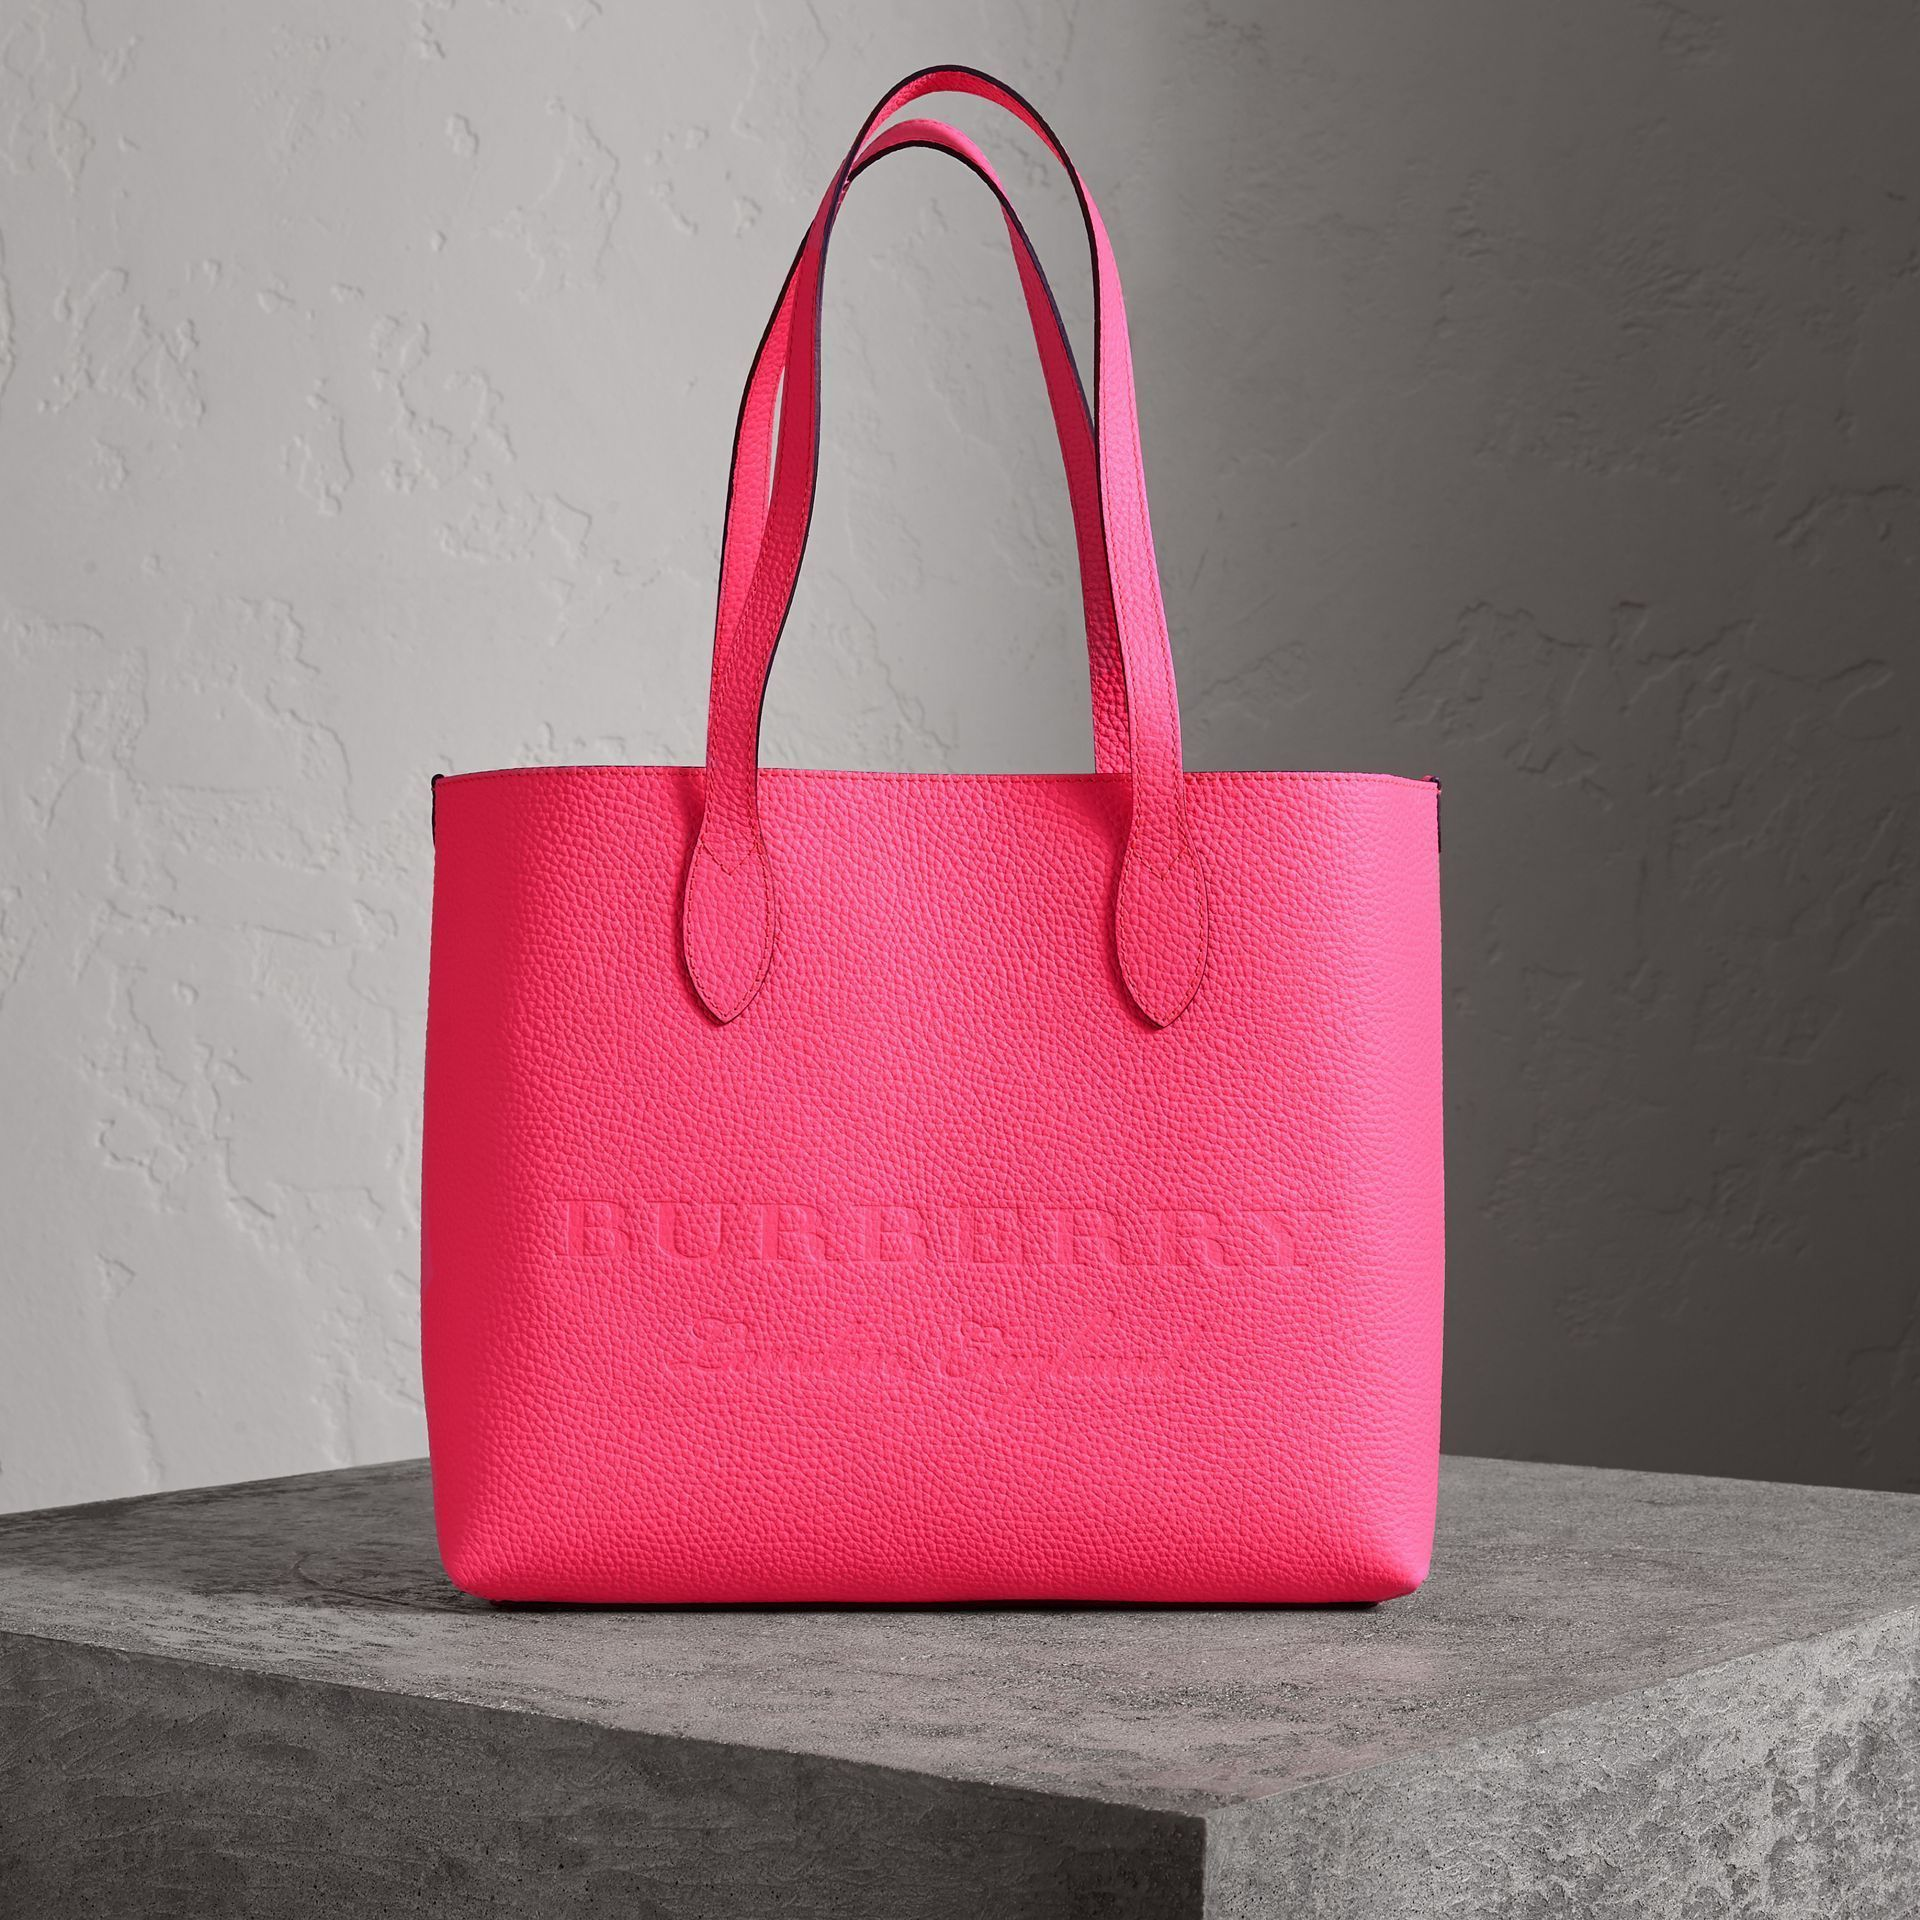 6adc2ef13fca Burberry Large Embossed Leather Tote